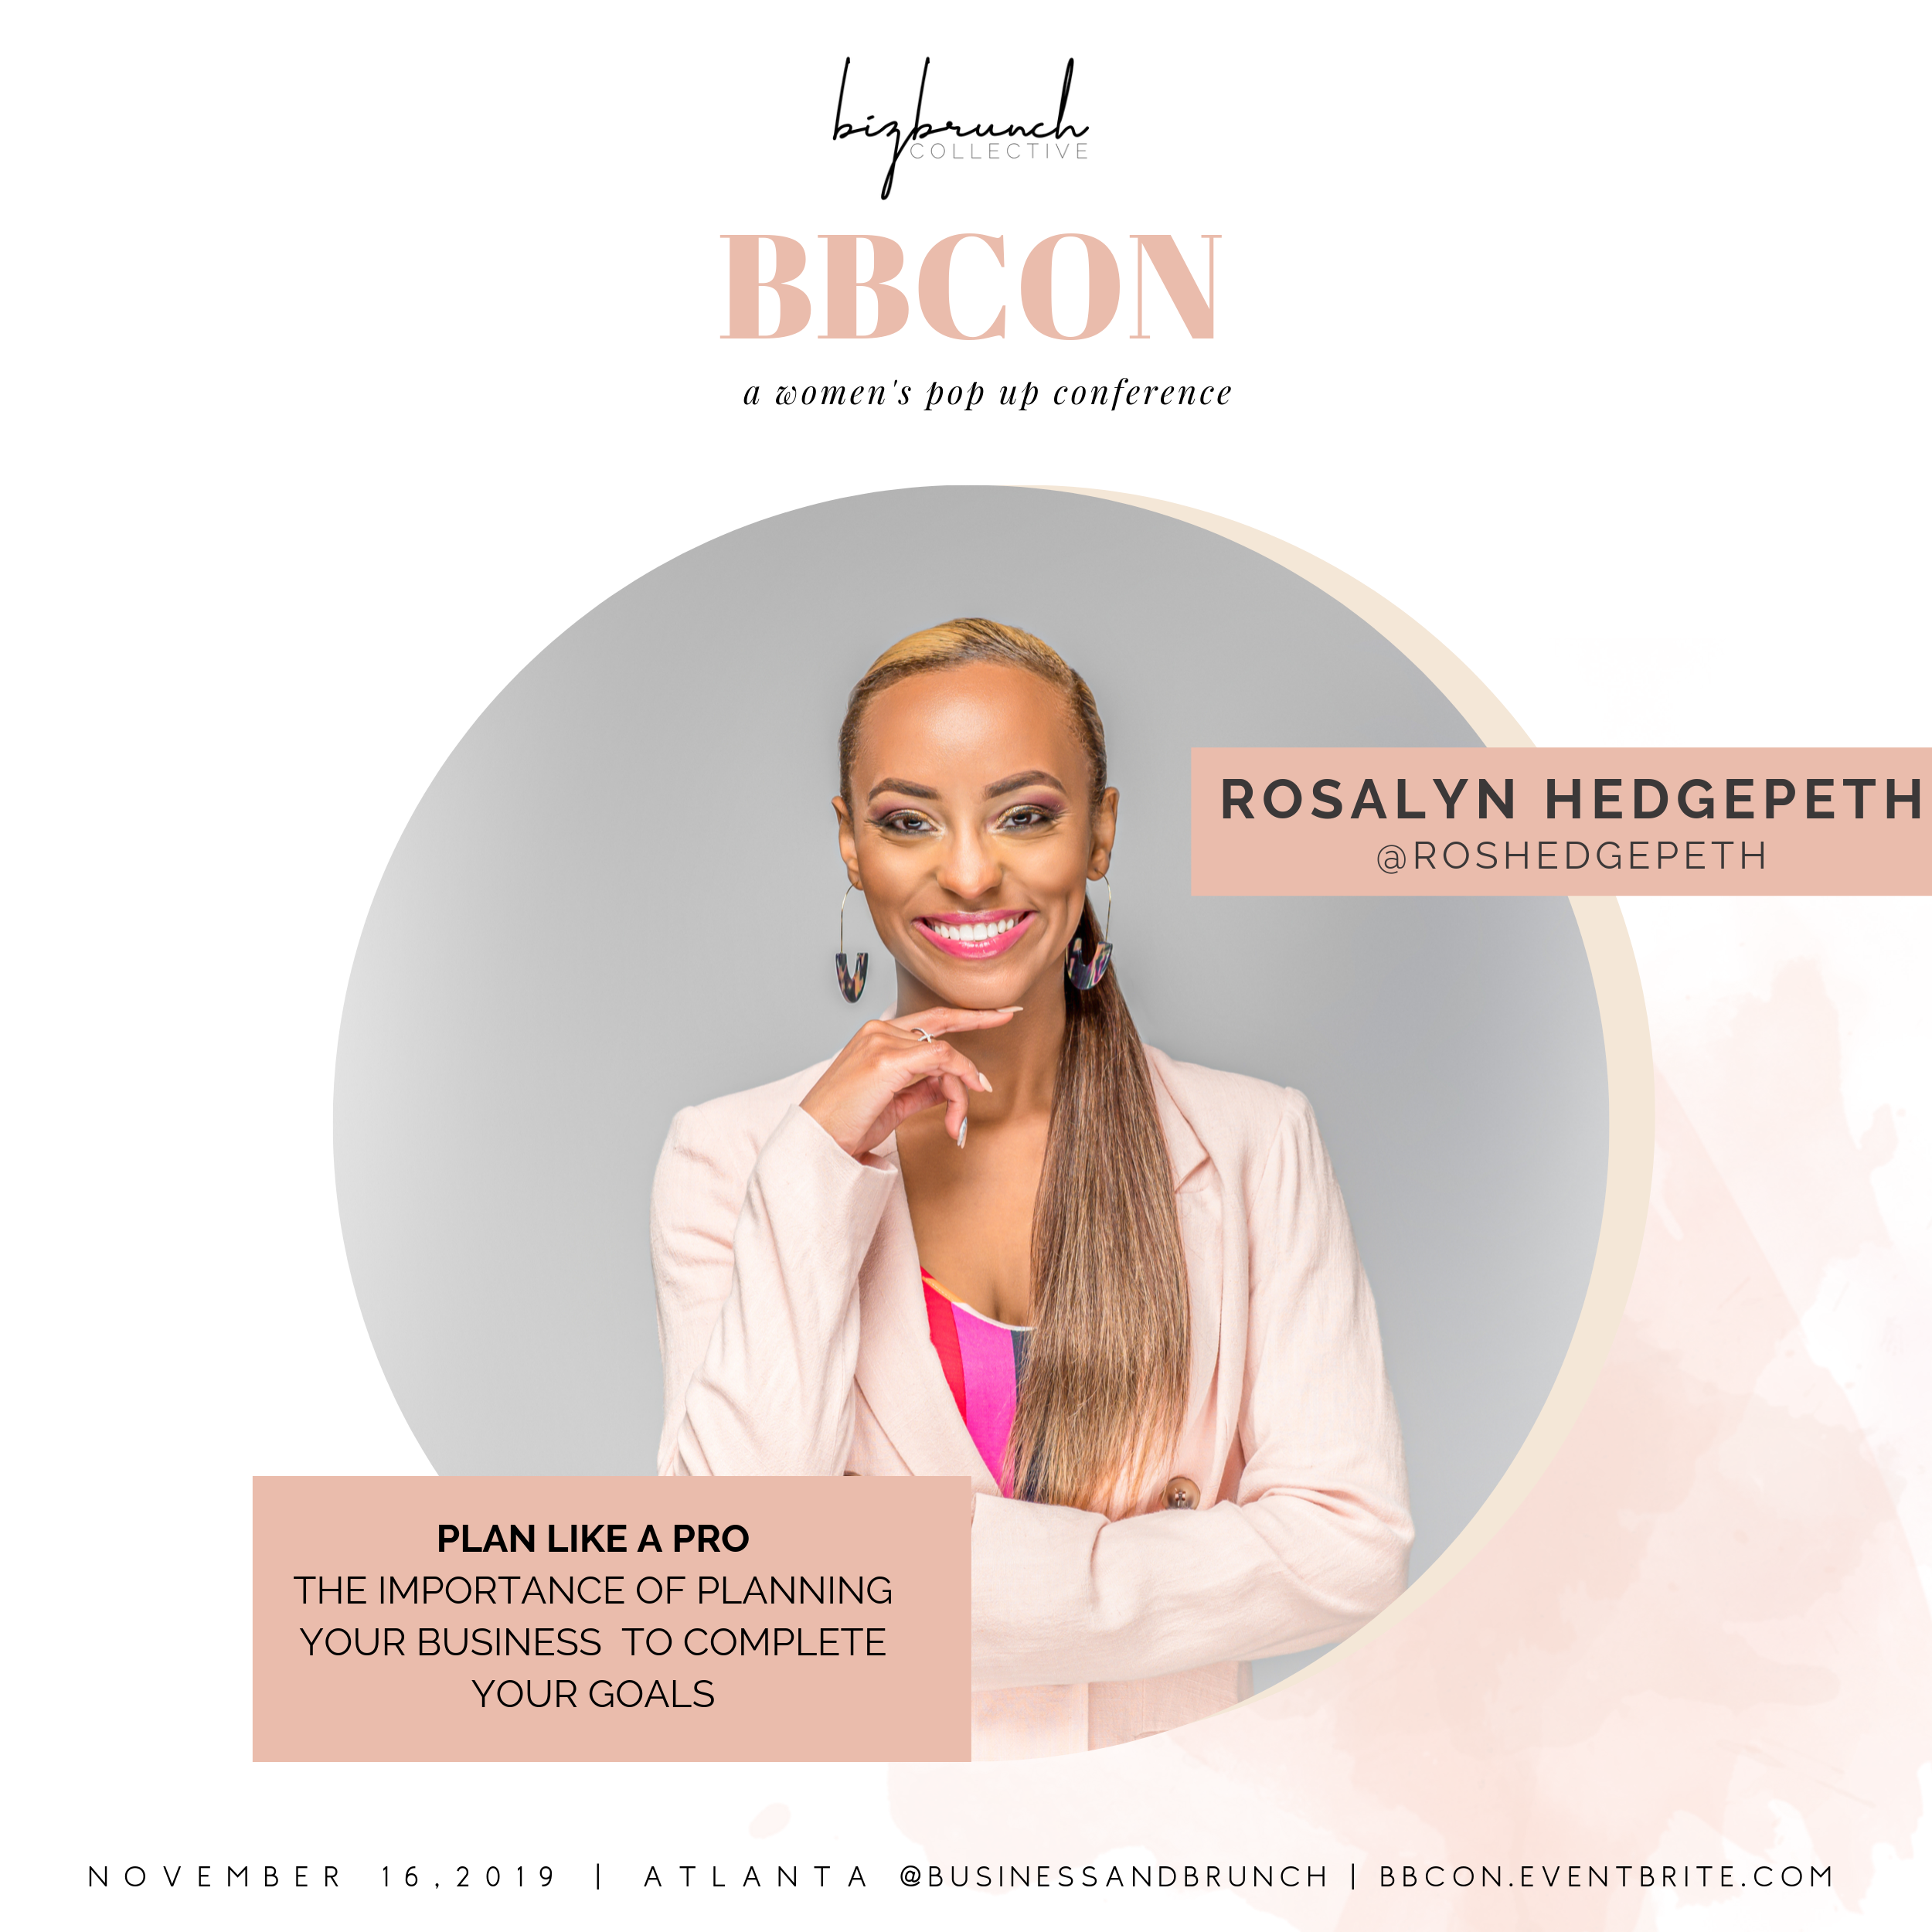 Rosalyn Hedgepeth at BBCON